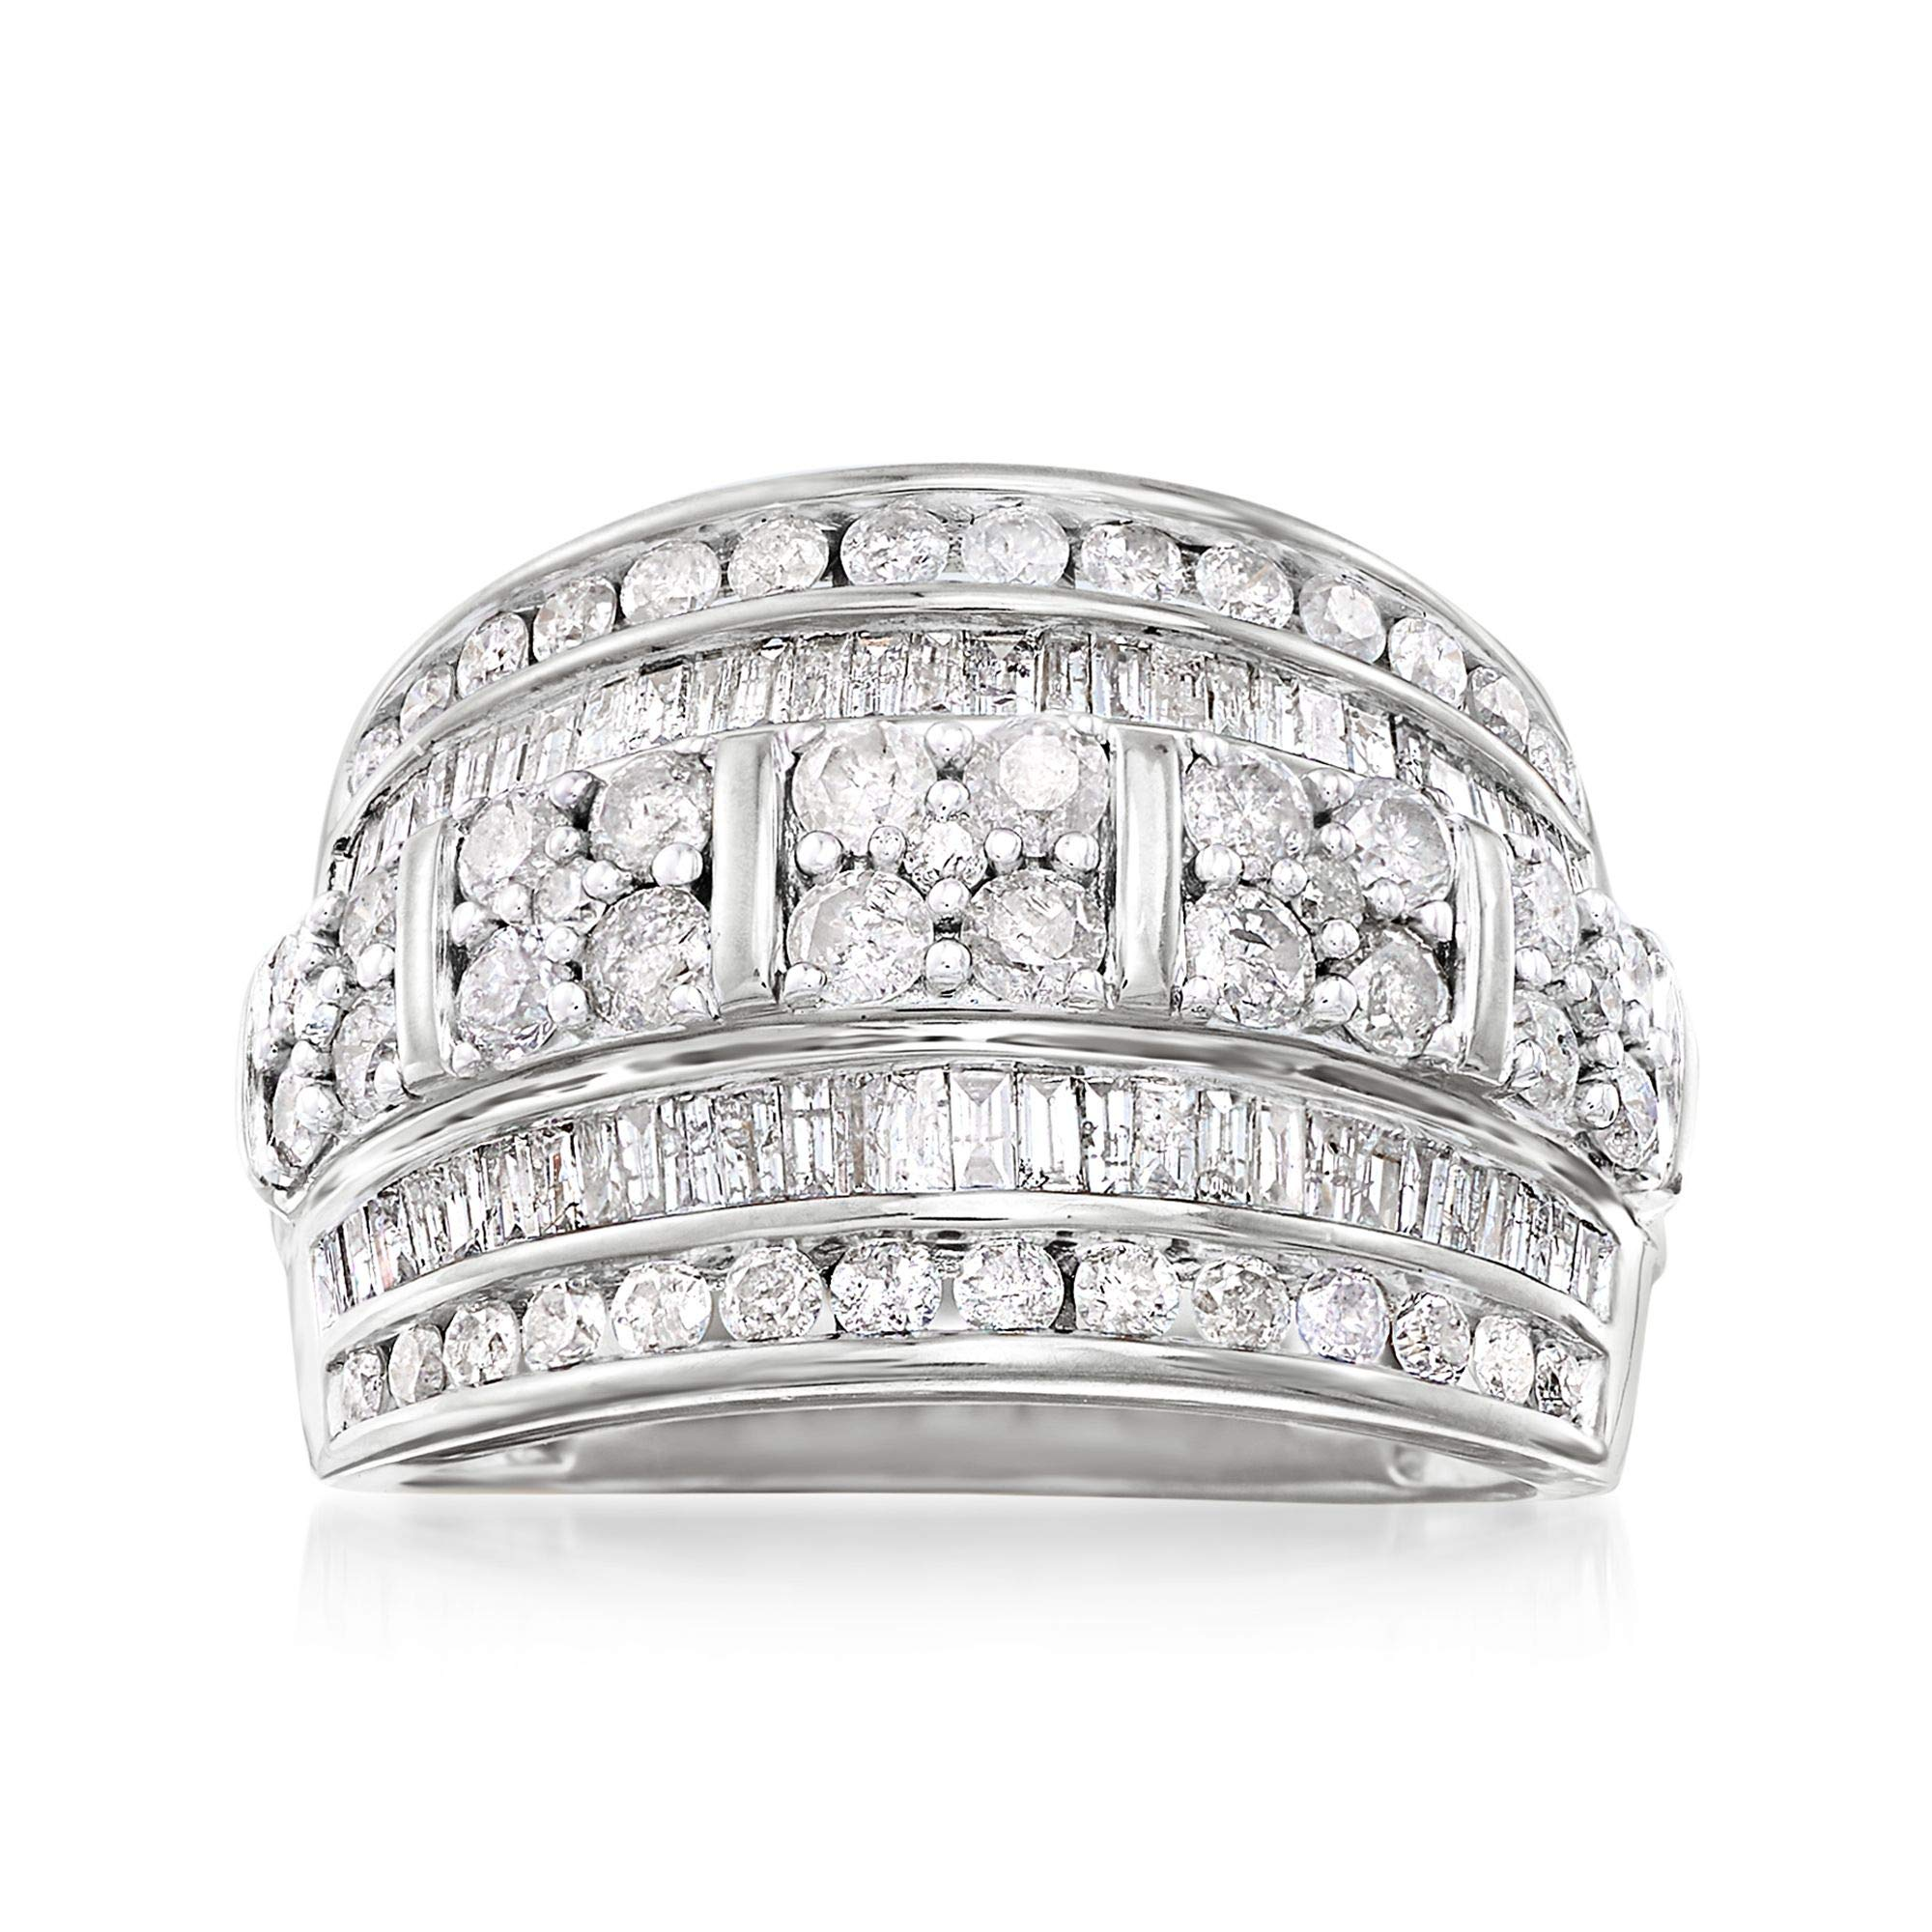 Ross-Simons 2.00 ct. t.w. Baguette and Round Diamond Multi-Row Ring in Sterling Silver by Ross-Simons